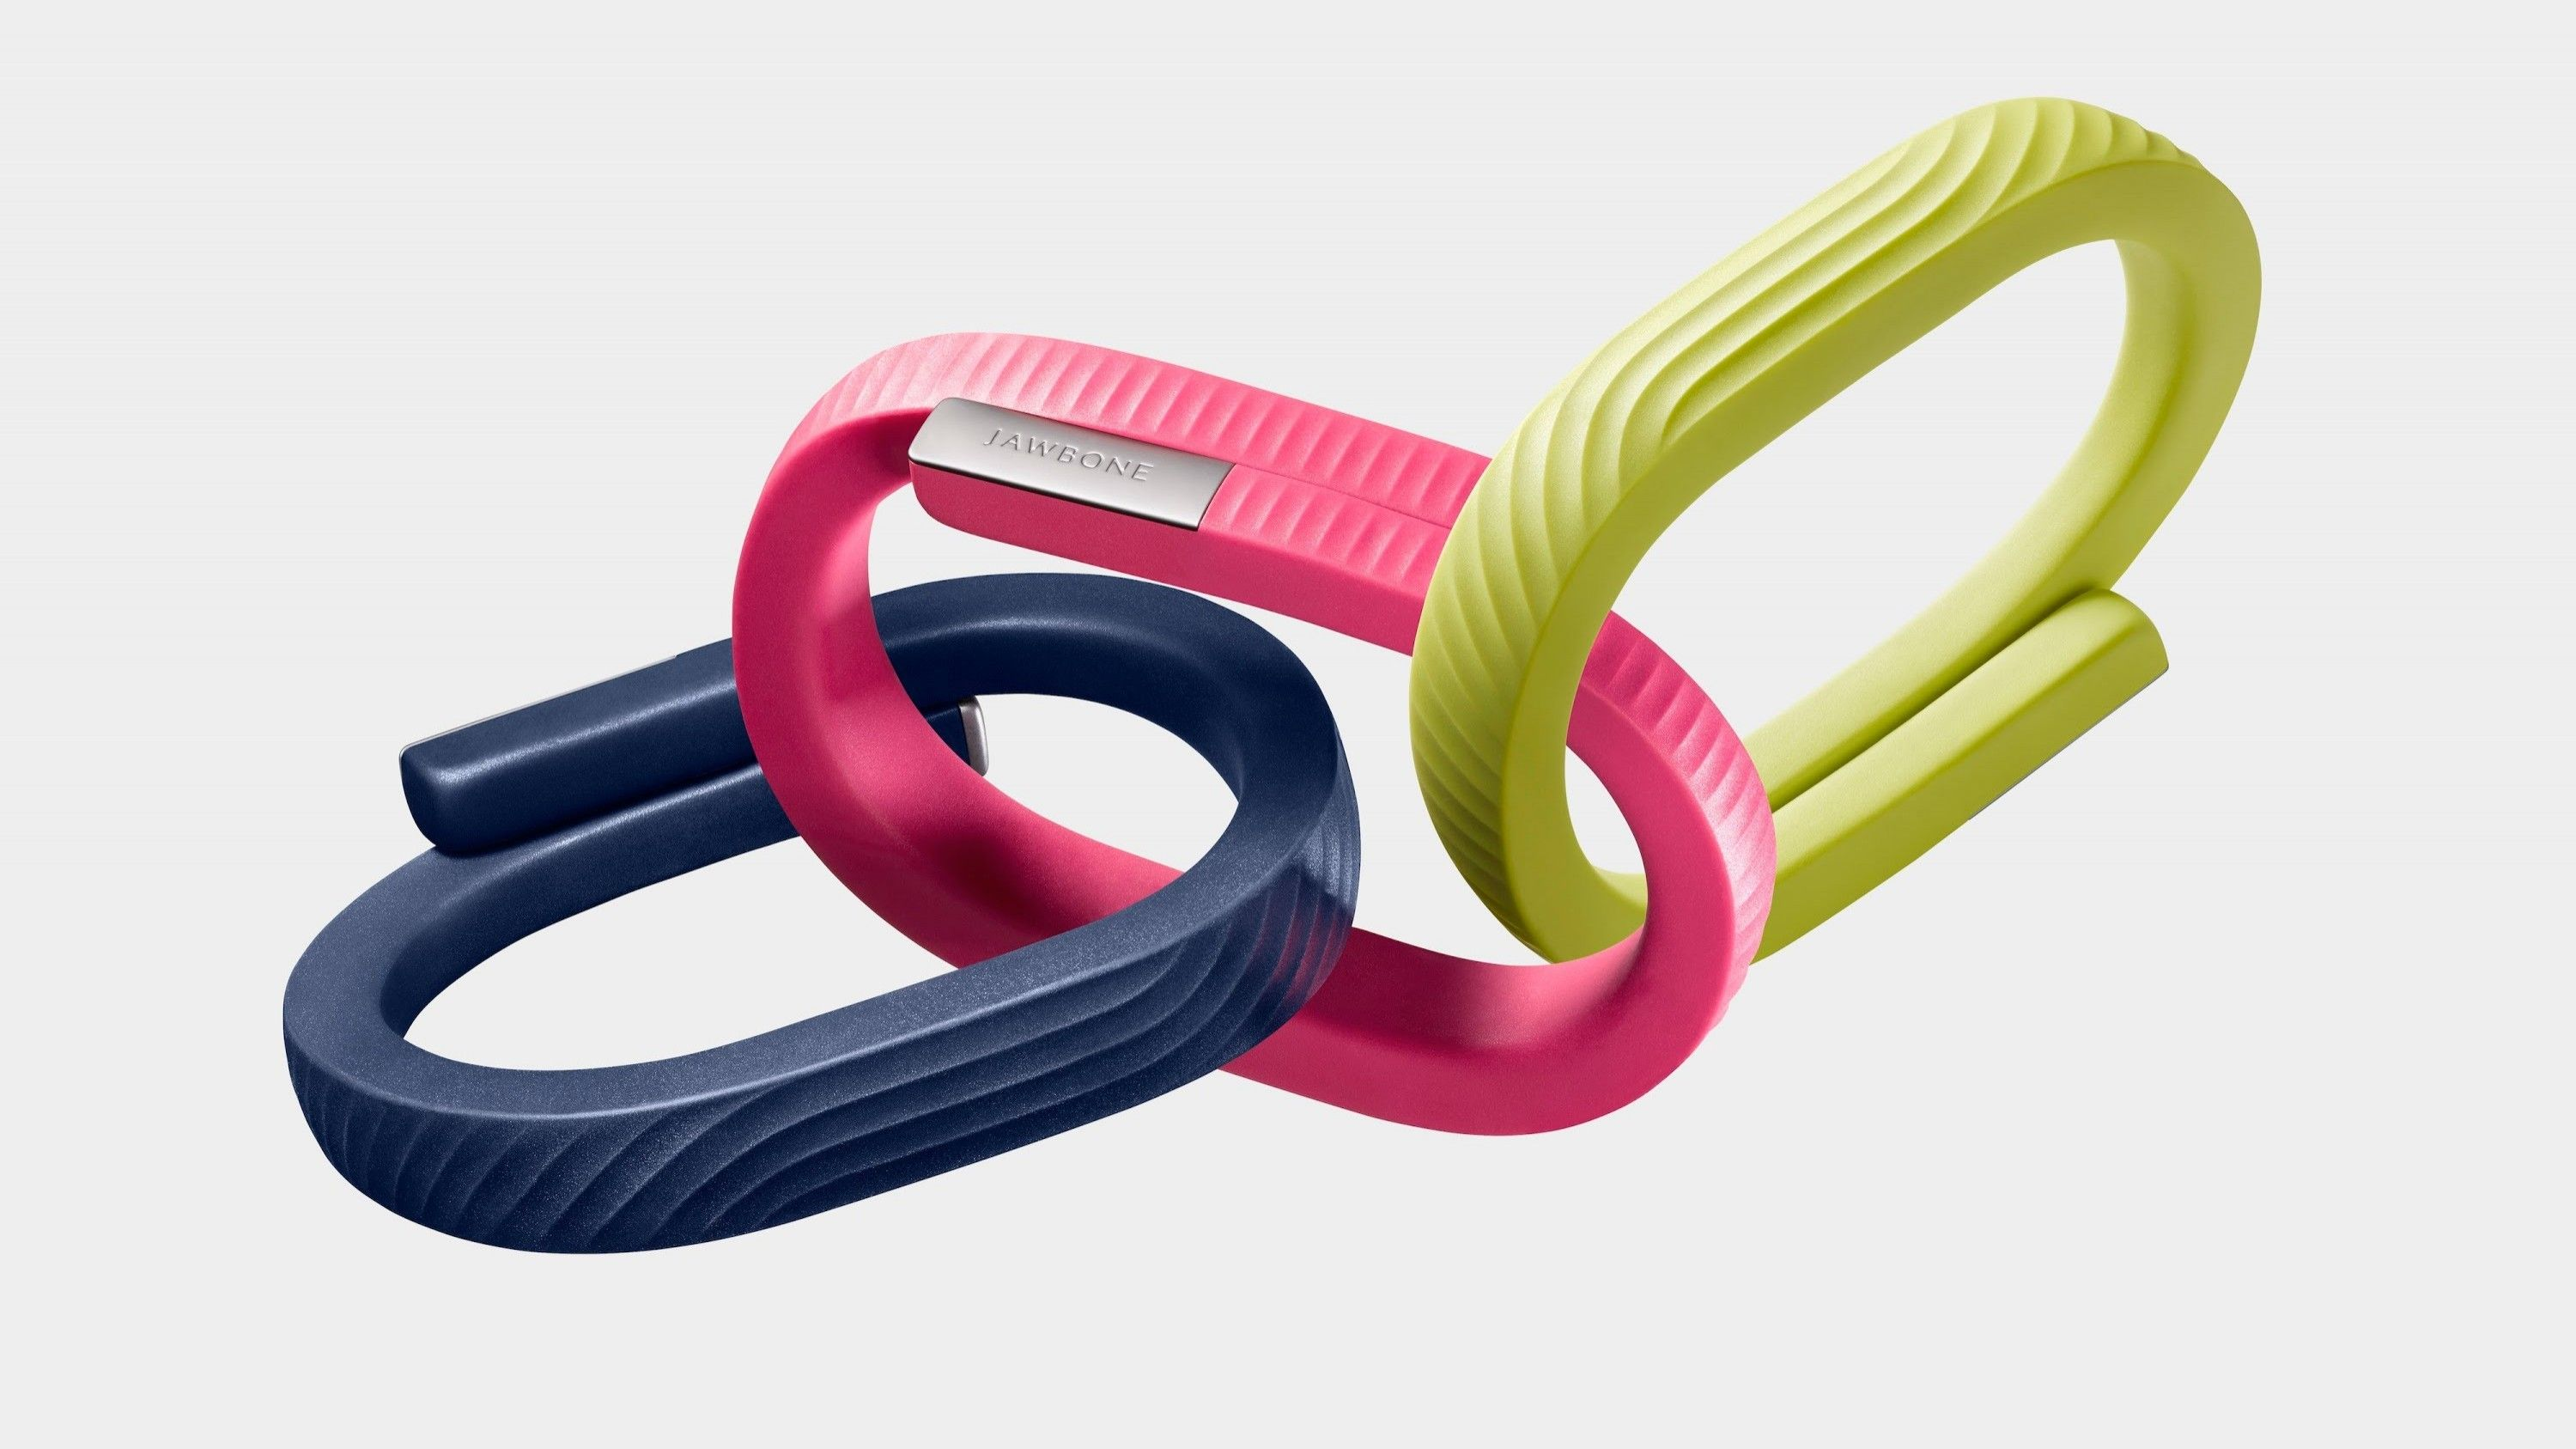 Live better jawbone up24 commercg 30001687 fitness pinterest live better jawbone up24 commercg 30001687 biocorpaavc Image collections